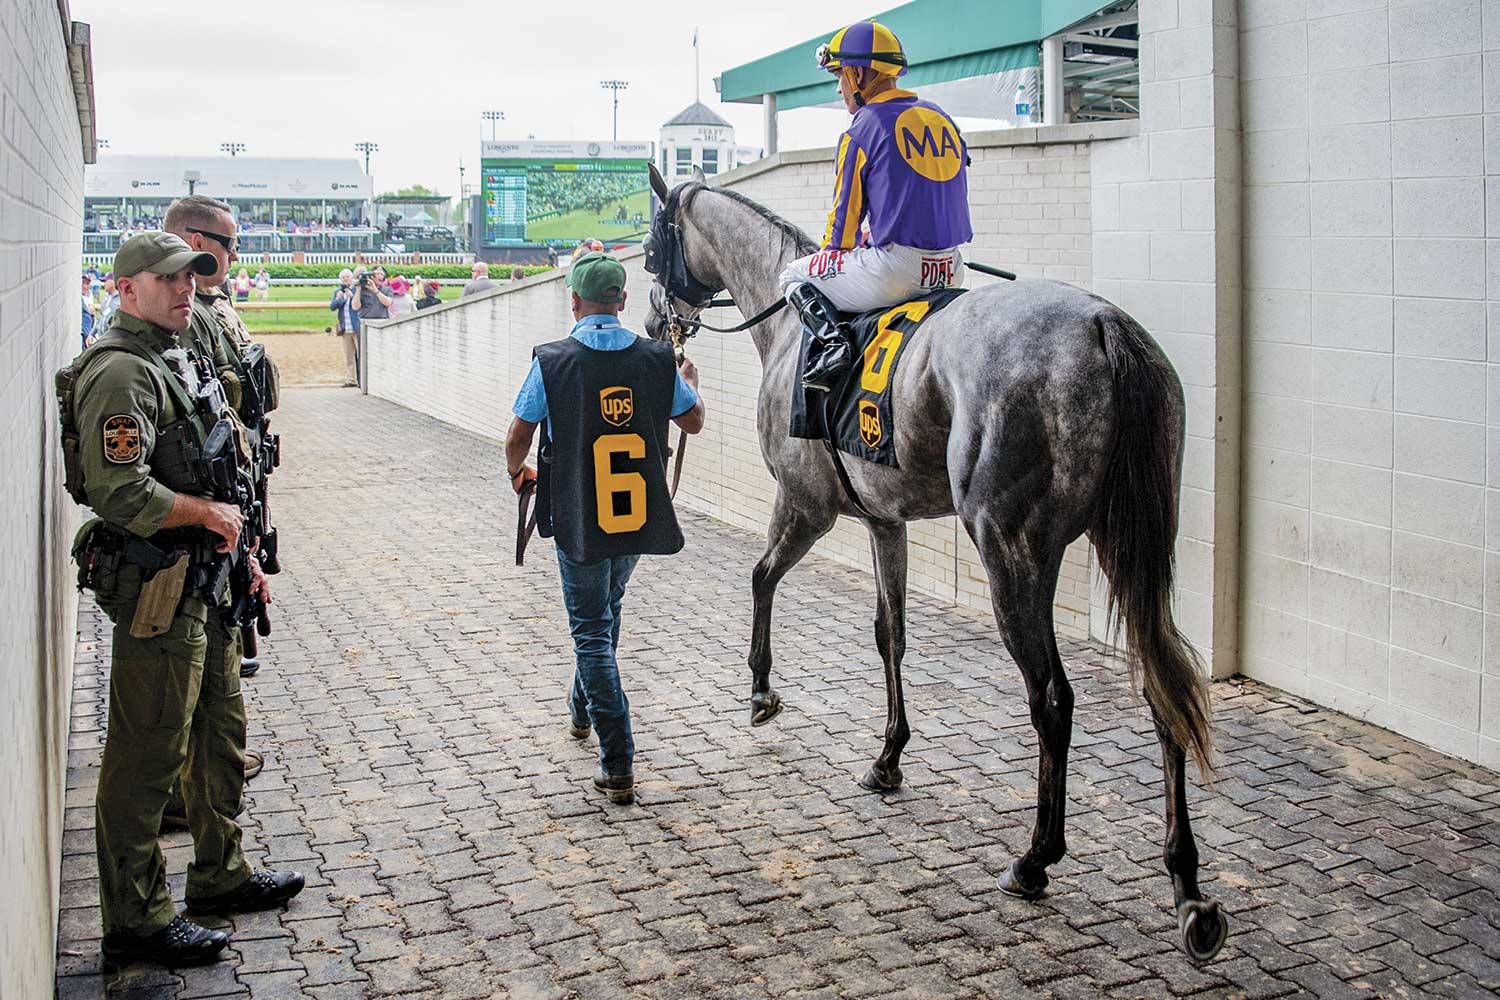 LMPD officers Matt Ernst, left, and Daniel Weedman check the Paddock Tunnel at Churchill Downs as jockeys and horses enter the track for an early race. (Photo by Jim Robertson)